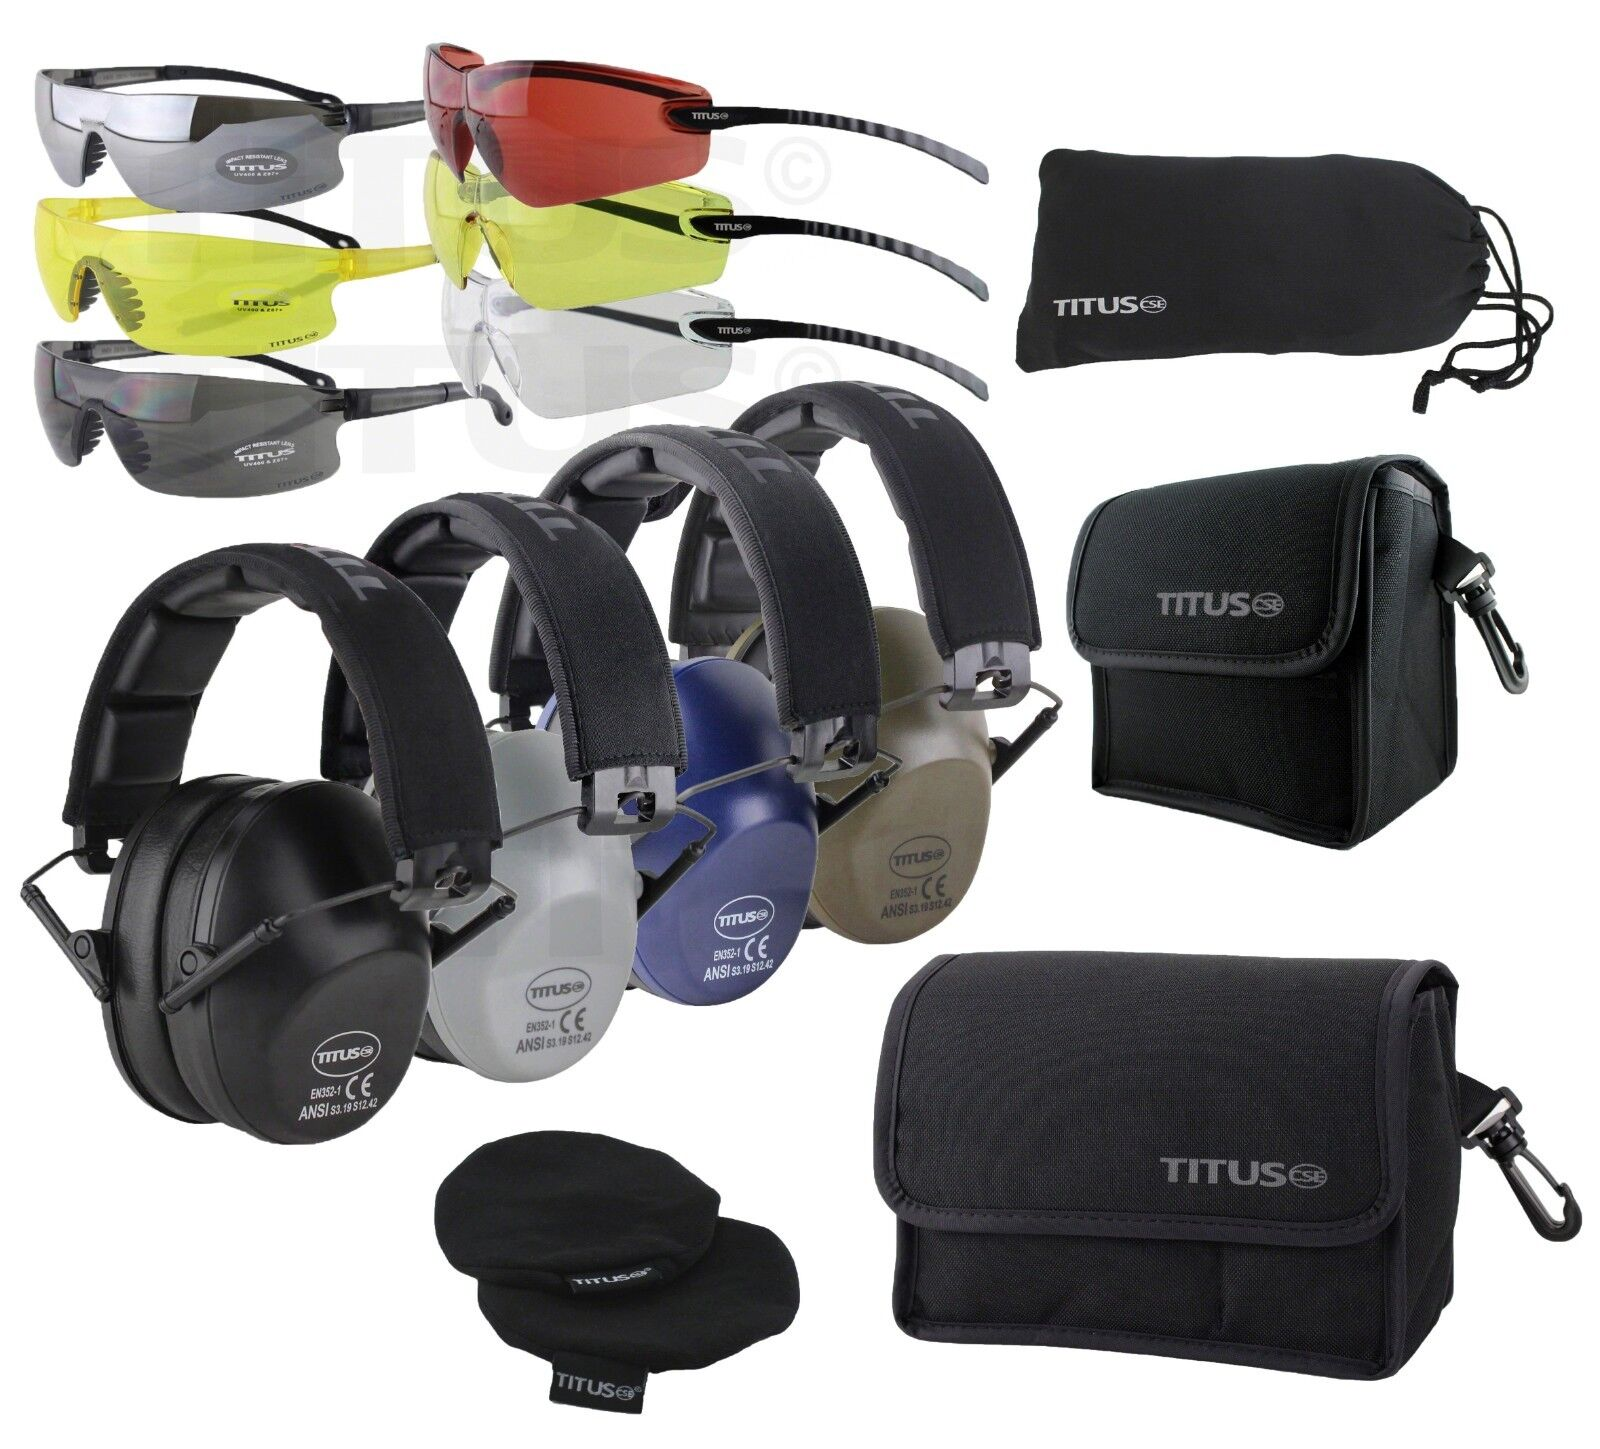 TITUS 2 Series Low Pro 34 NRR Ear Protection Safety Glasses